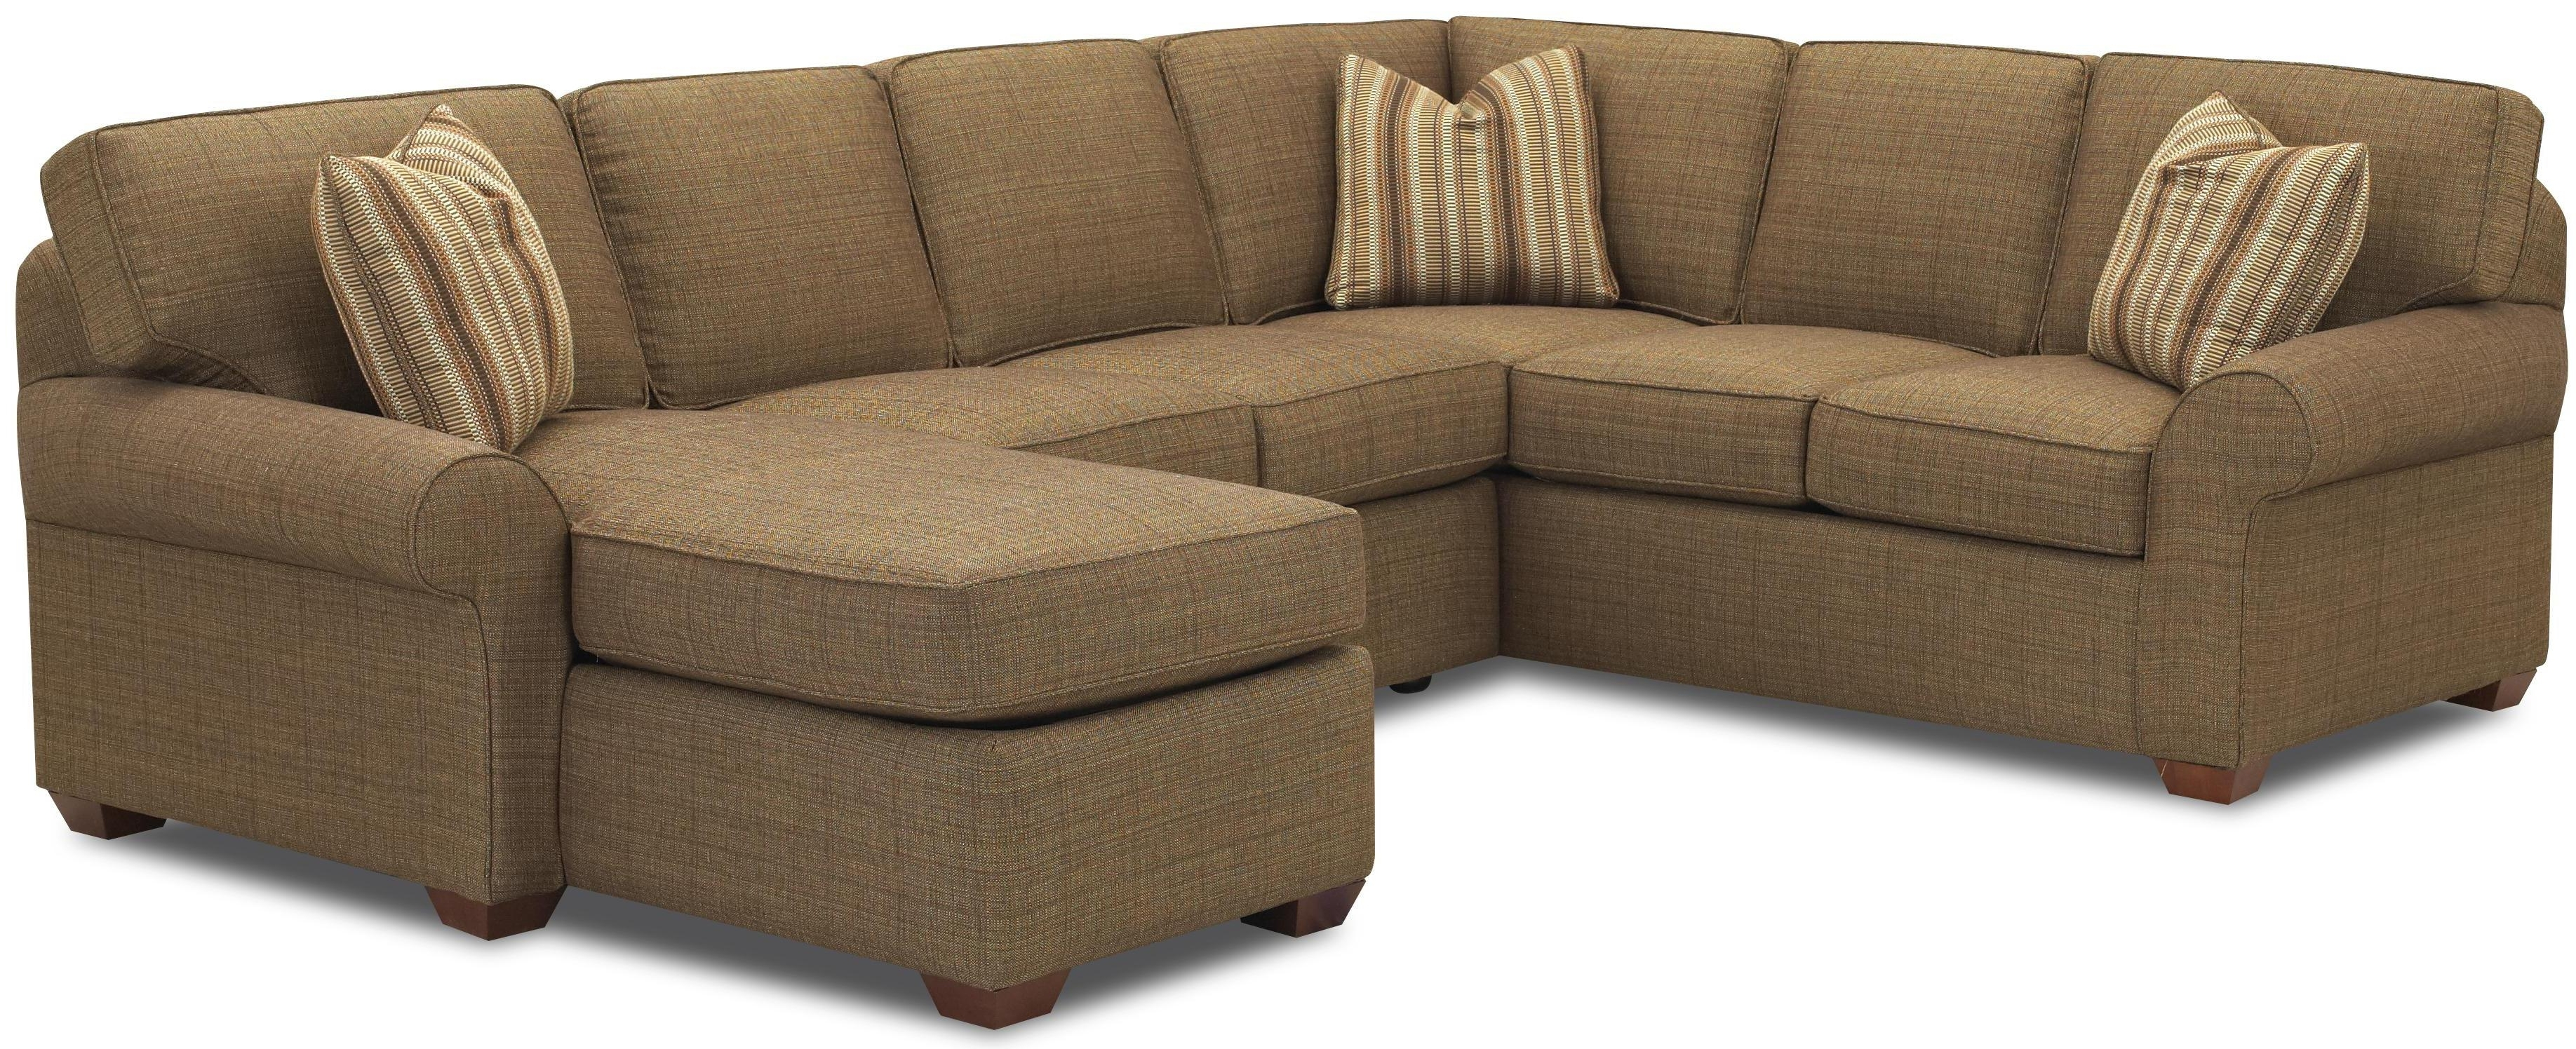 Klaussner Patterns Sectional Sofa Group With Right Chaise Lounge With Regard To Most Popular Loveseat Chaise Lounges (View 3 of 15)